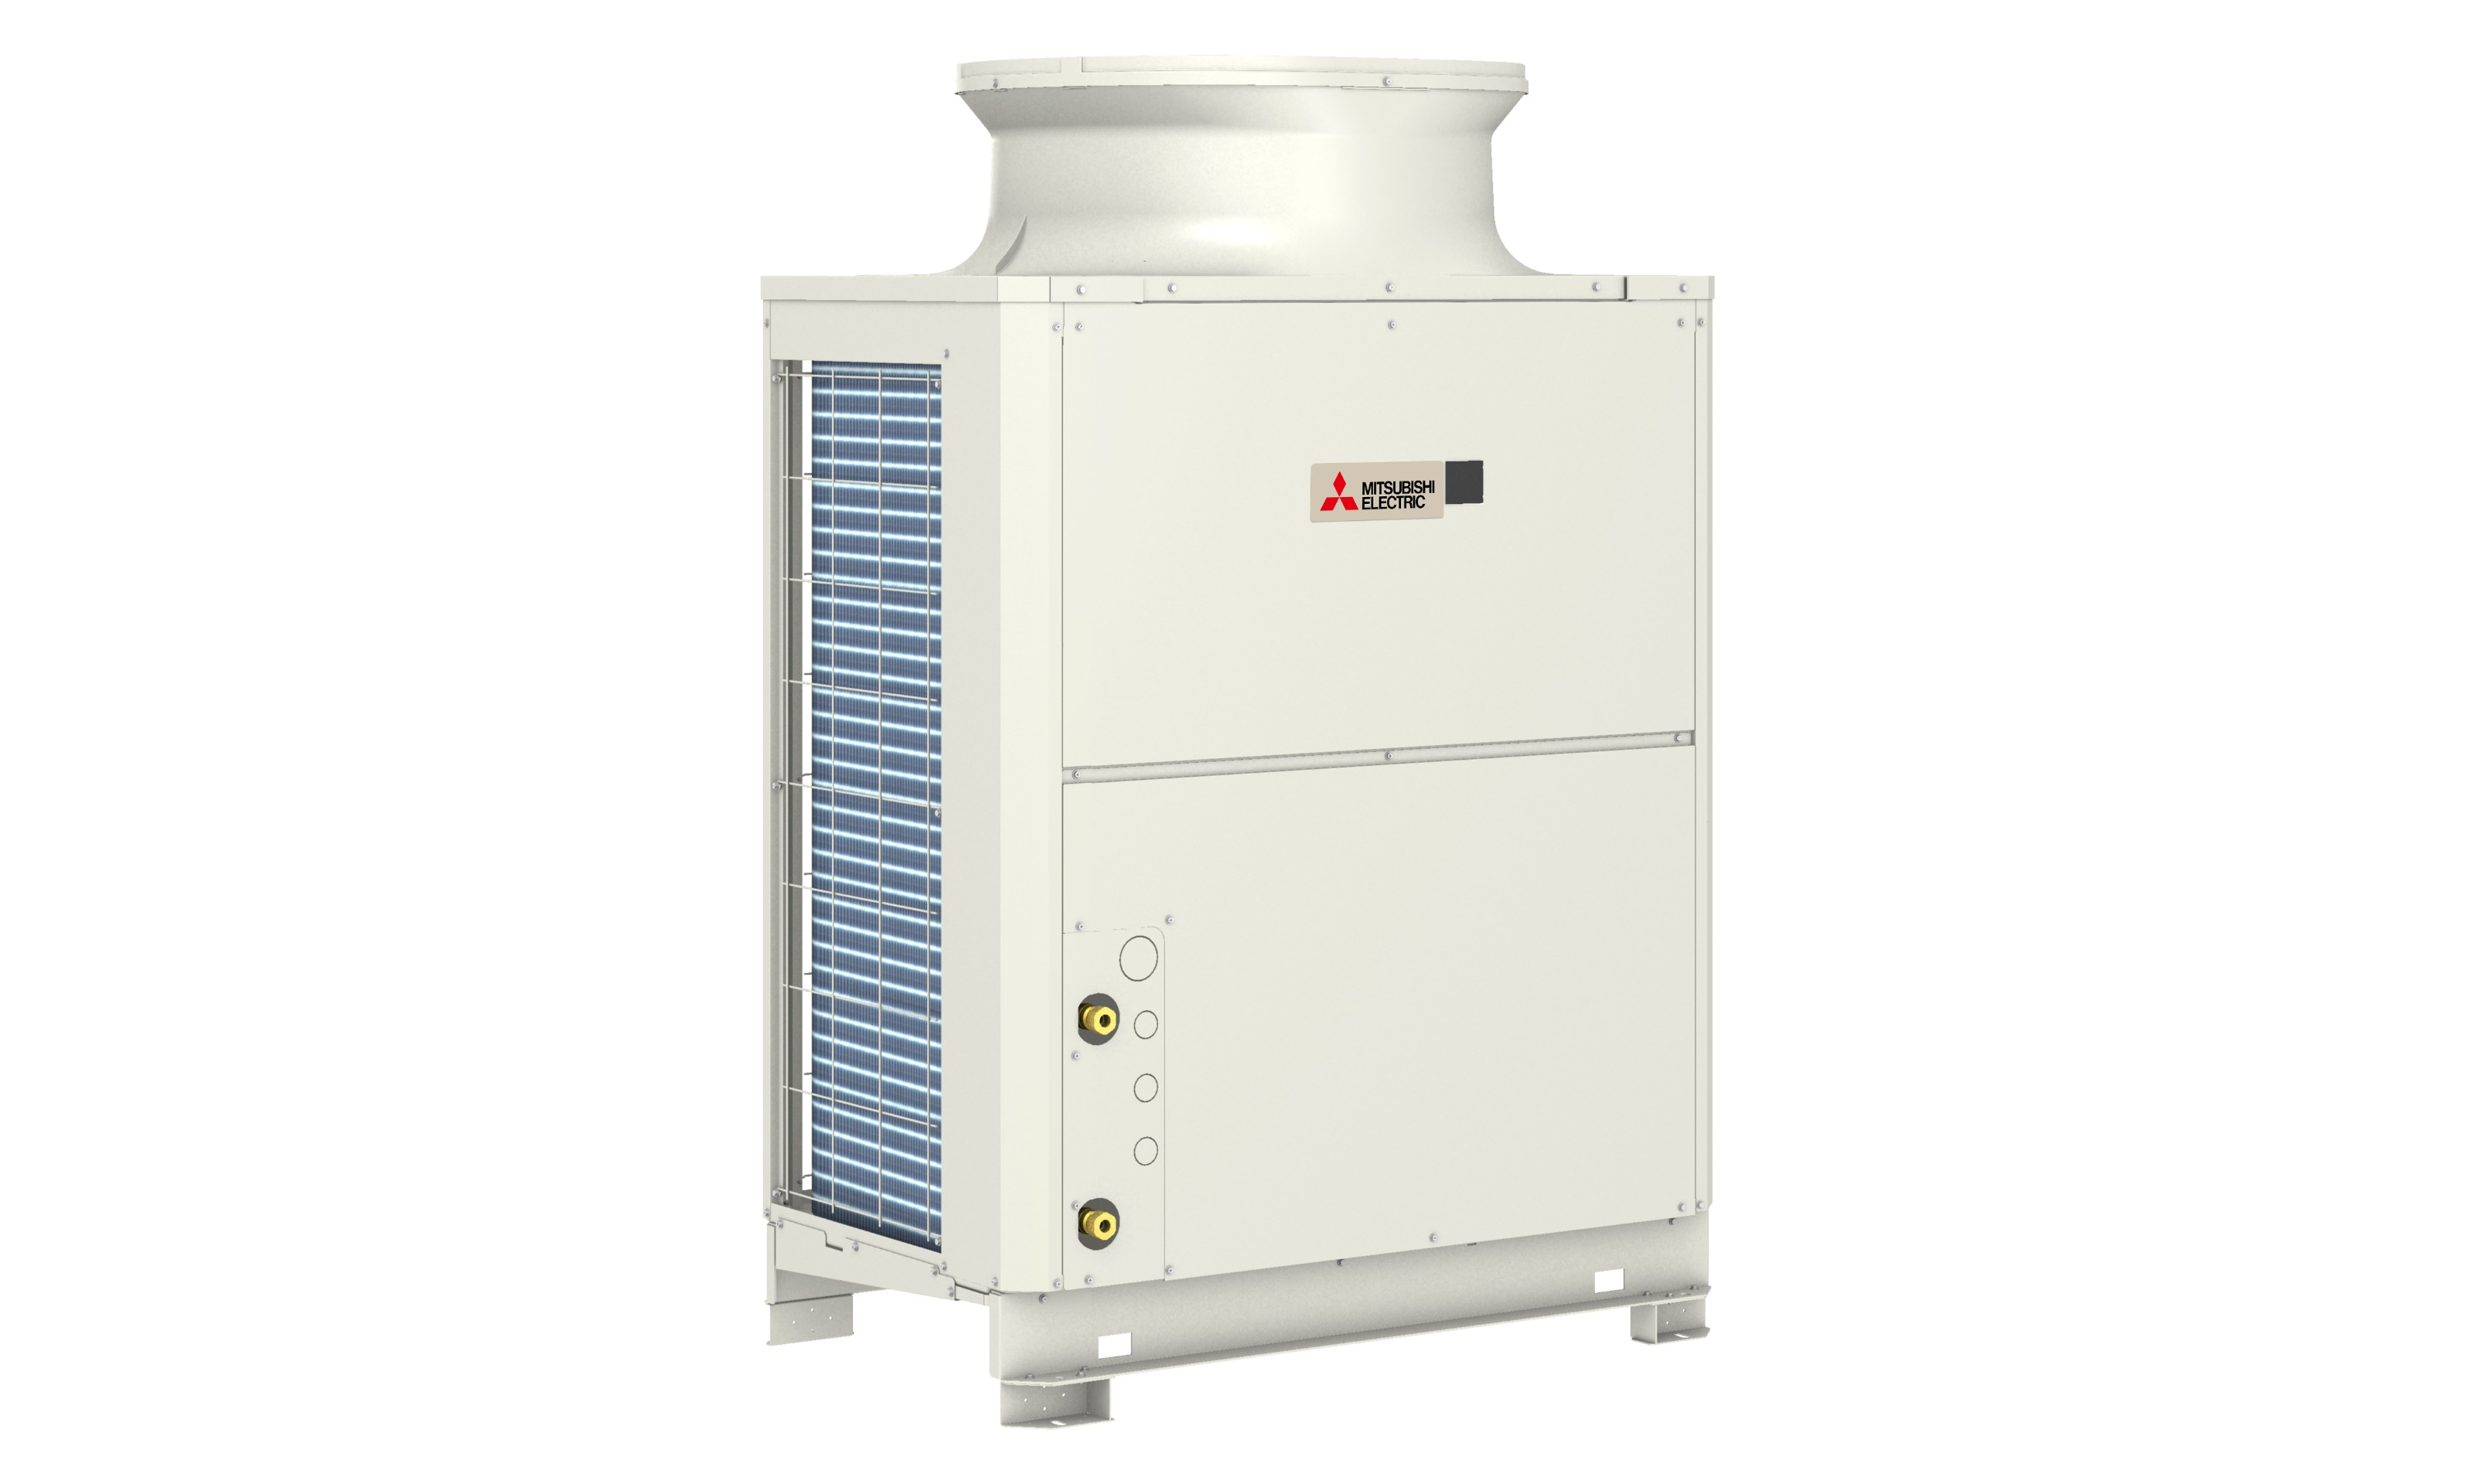 High temperature CO2 heat pump increases hot water efficiency